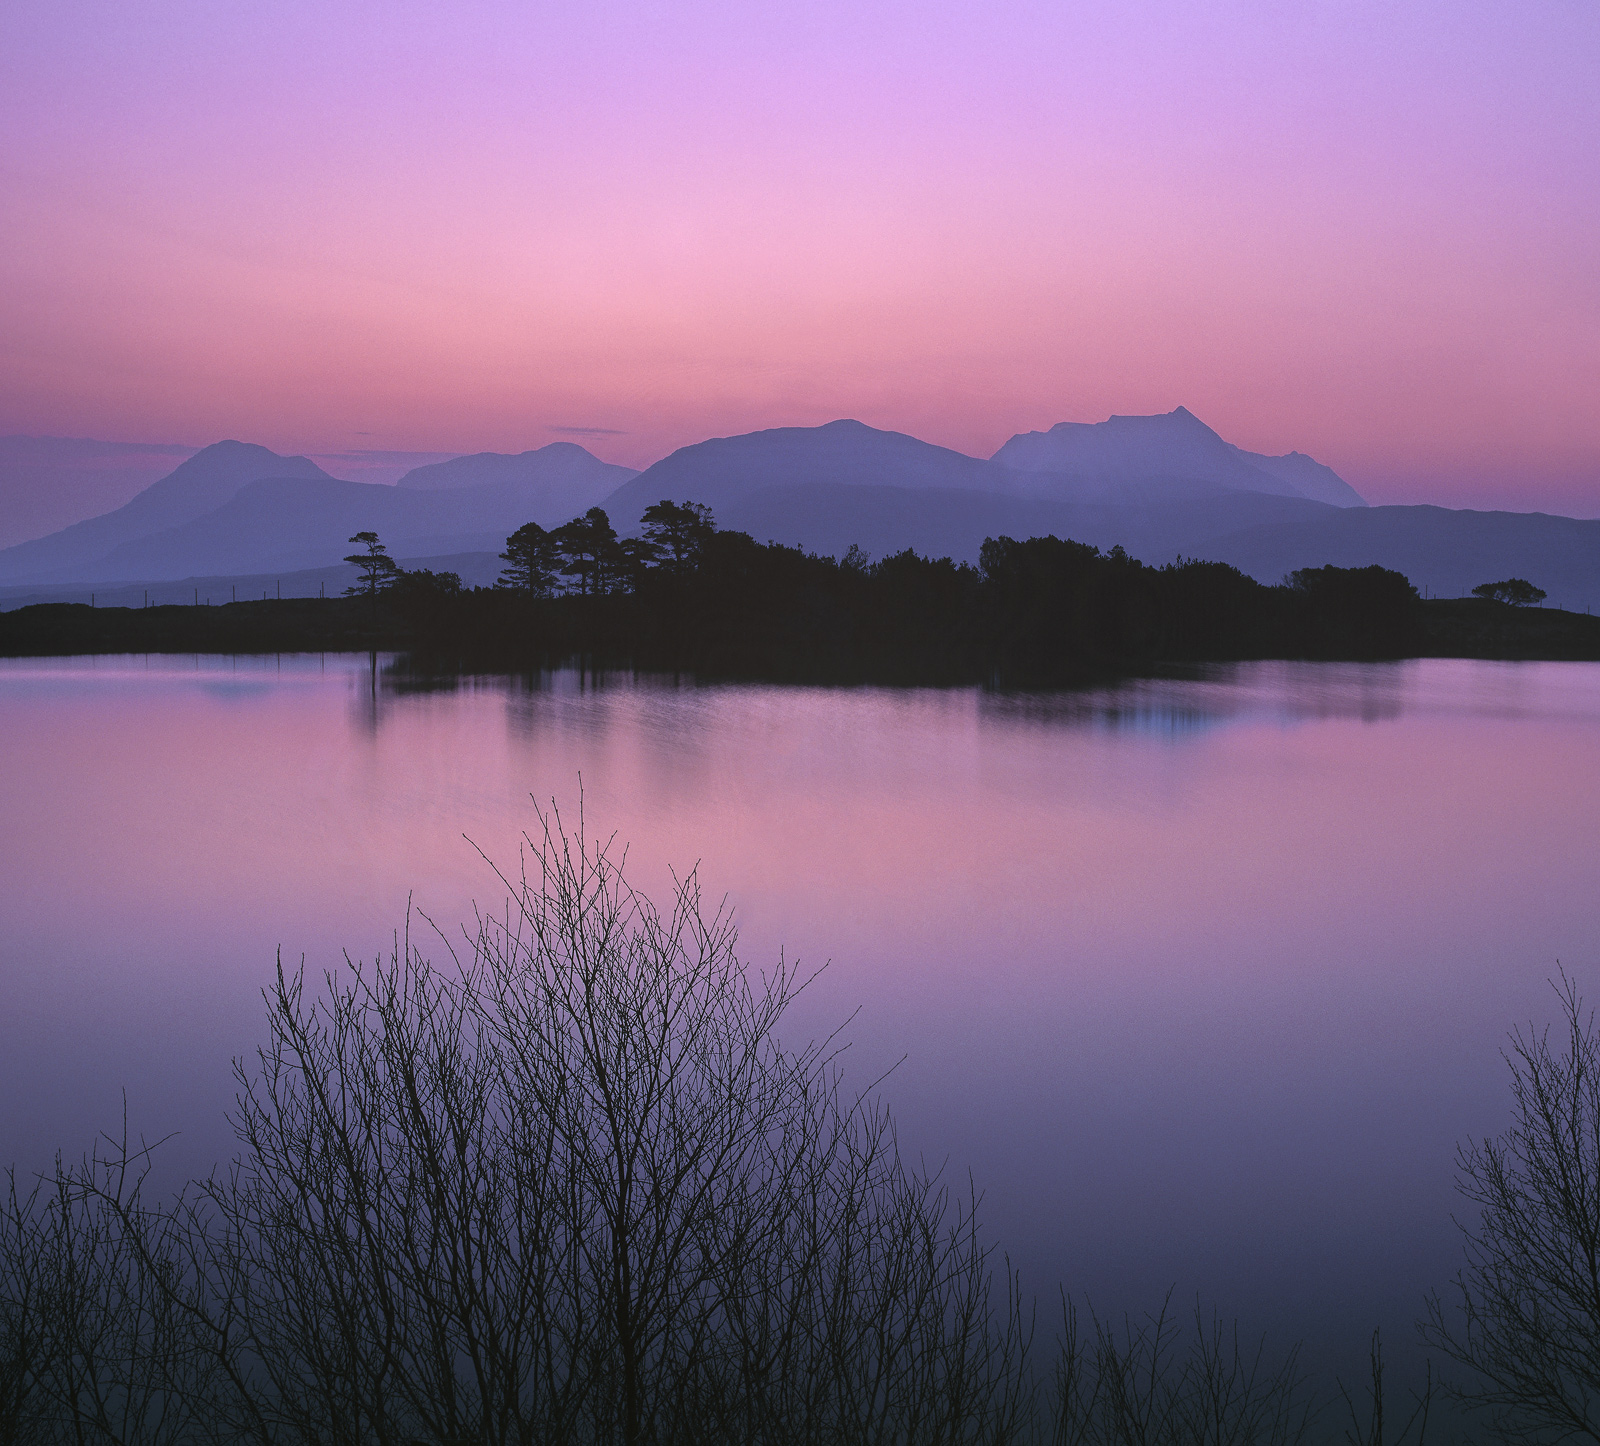 Glorious pink hues from a sumptuous plum coloured twilit sky bleed slowly into the midnight blues of dusk at Loch Culdromman...